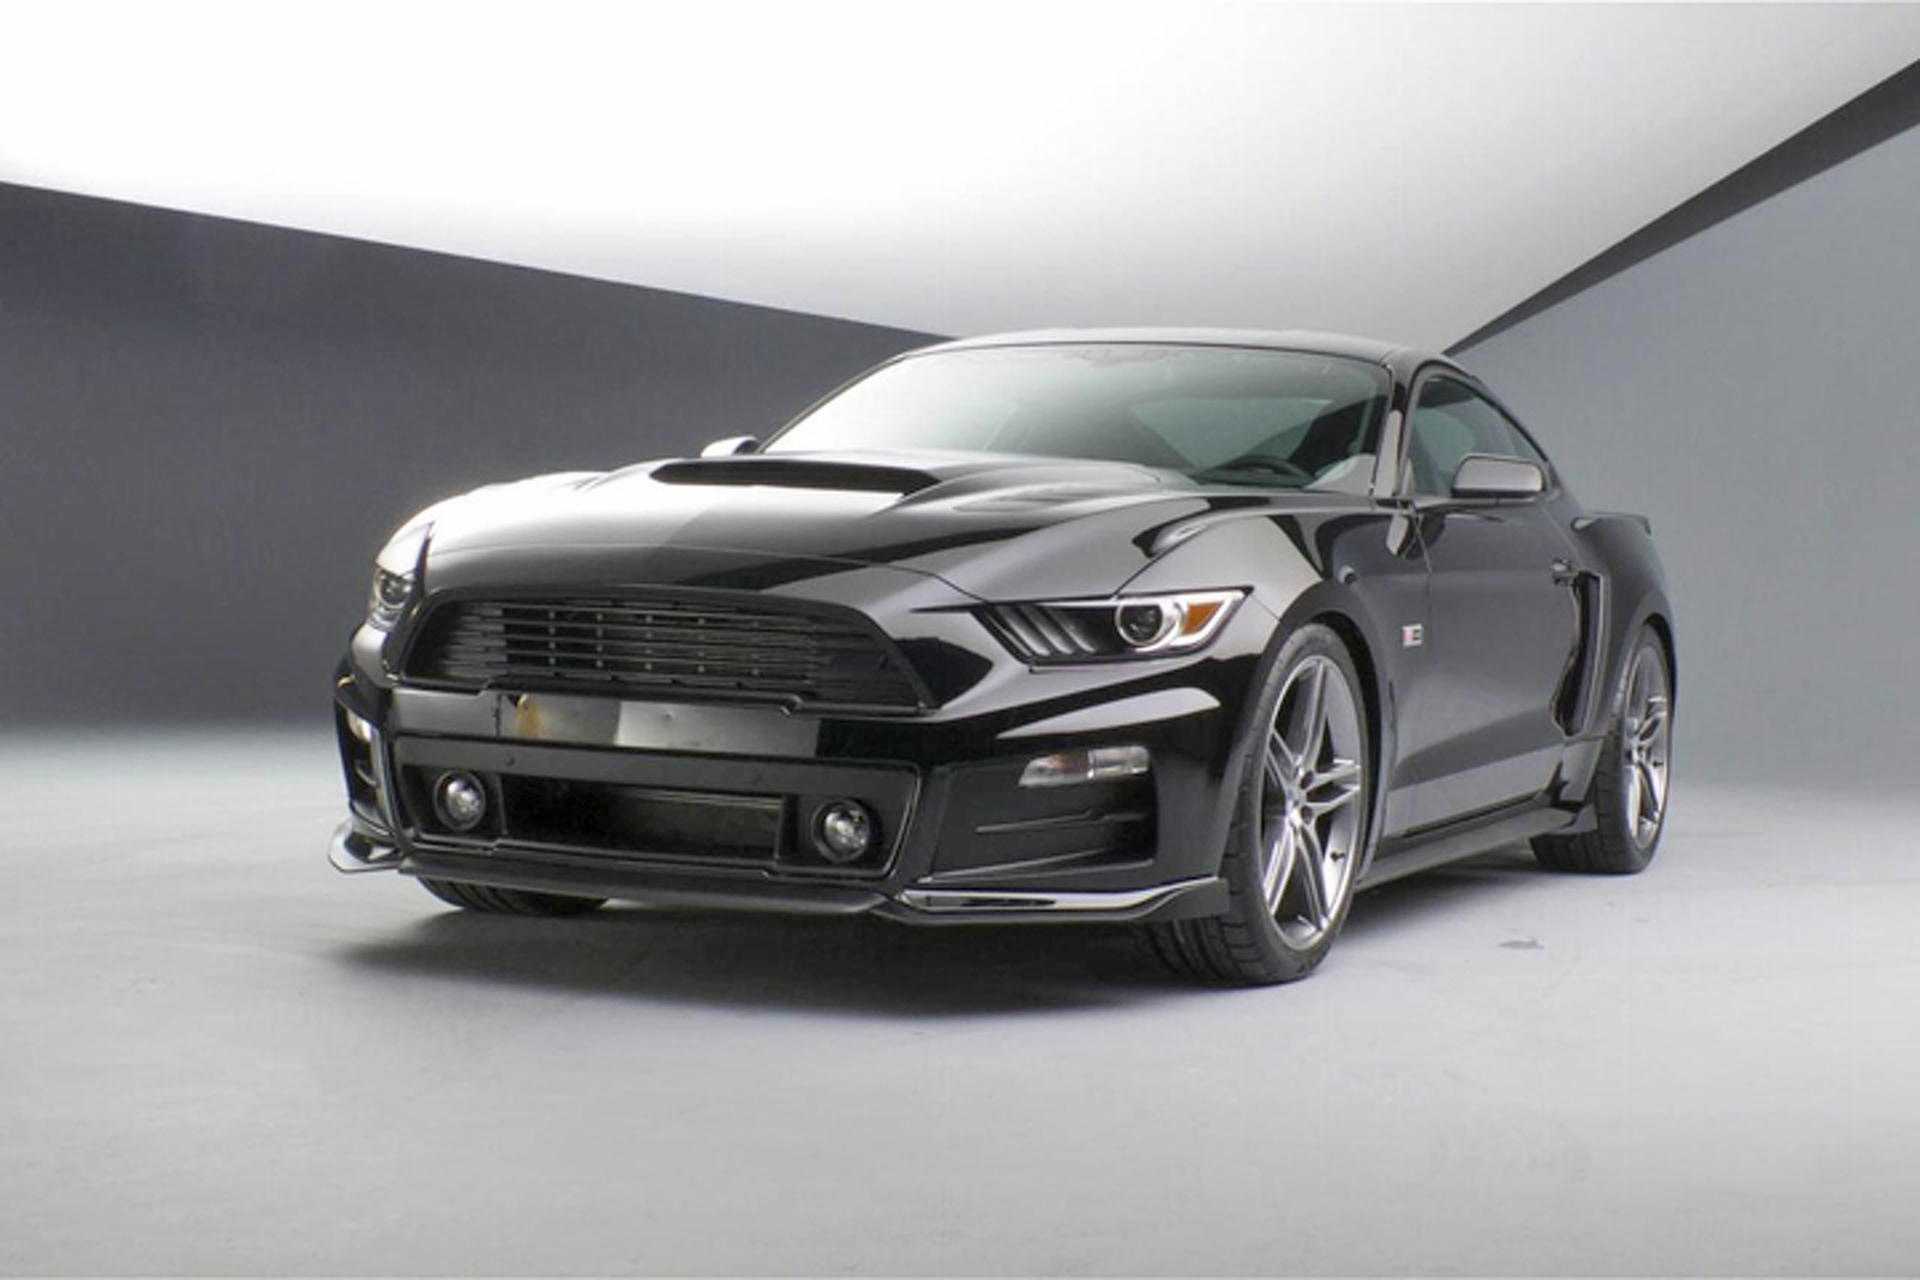 2015 Roush Mustang Looks So Much More Aggressive